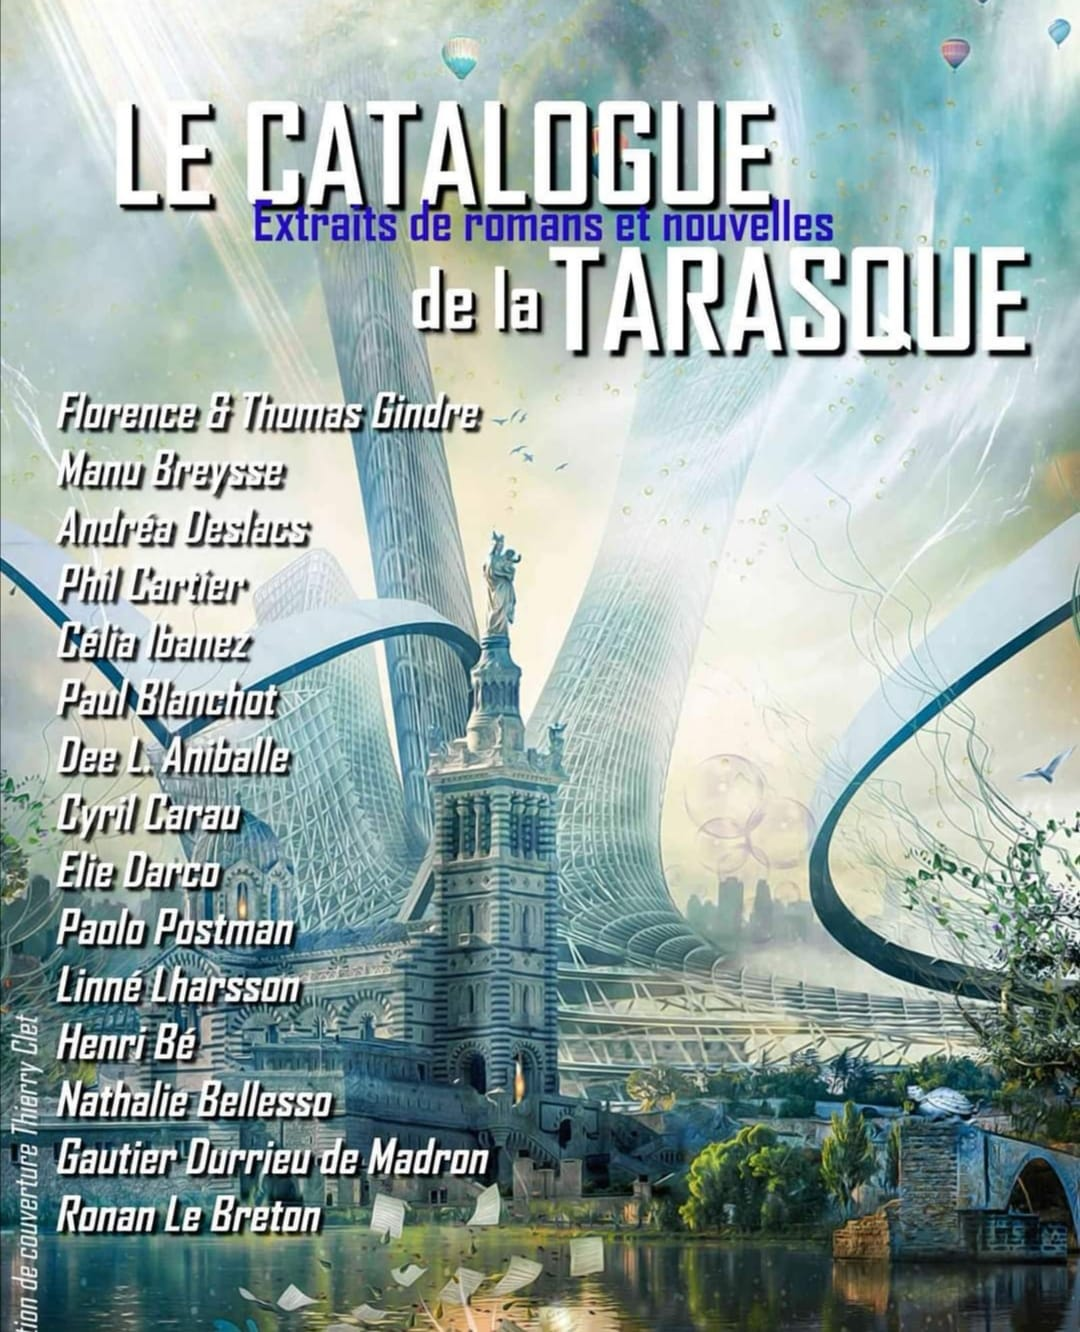 Le catalogue de la Tarasque